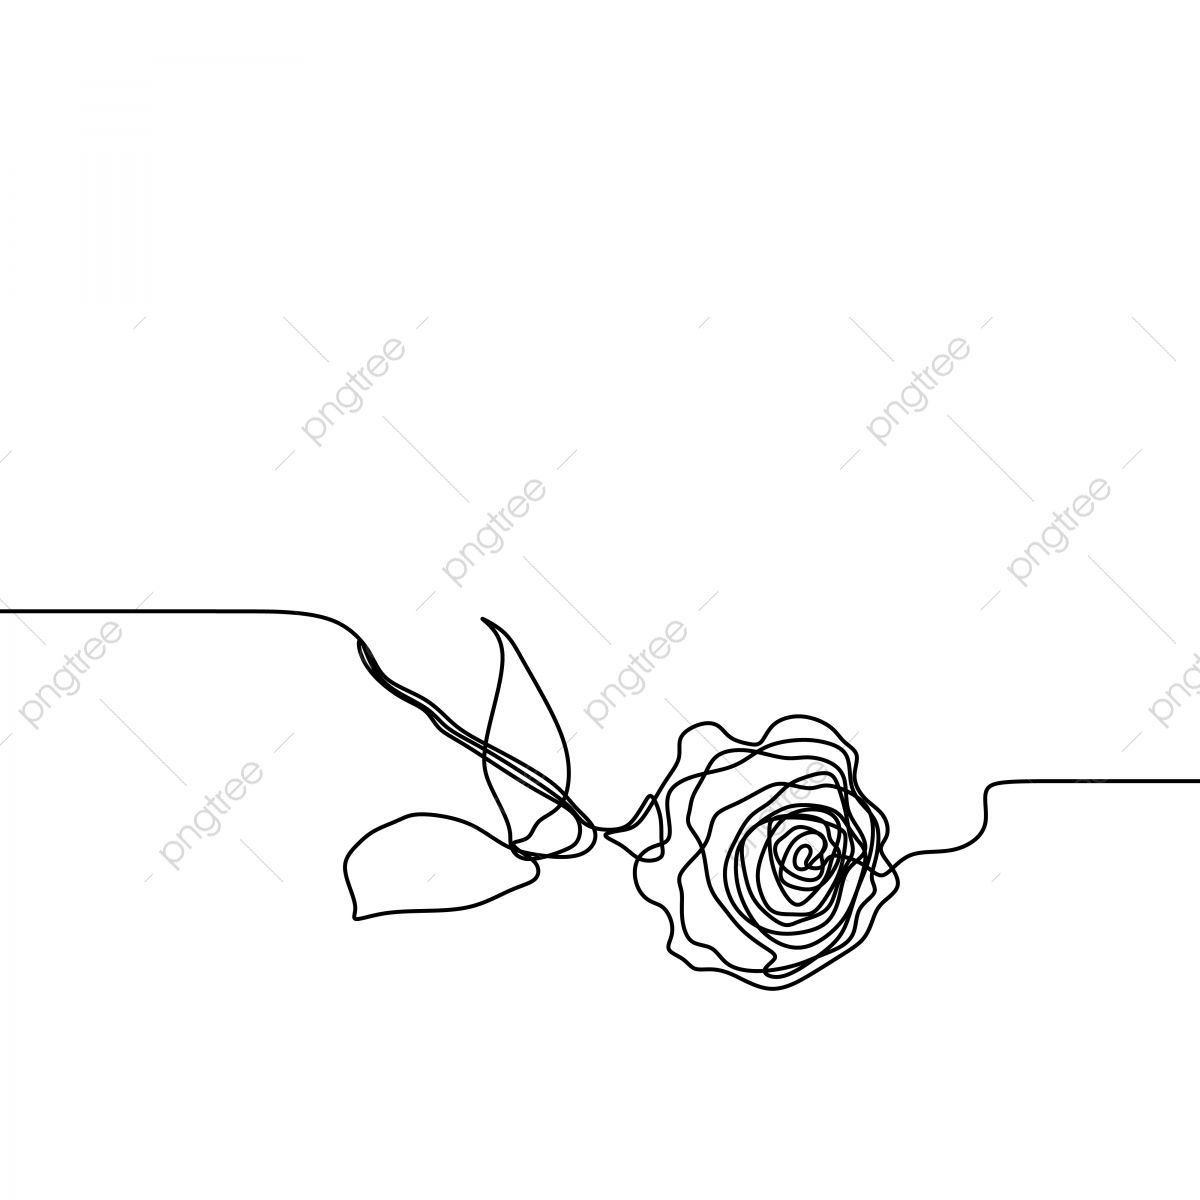 One Line Art Of Rose Flower Continuous Single Lines Drawing Free Template Roses Clipart Rose Flower Png And Vector With Transparent Background For Free Down Single Line Drawing Line Art Continuous